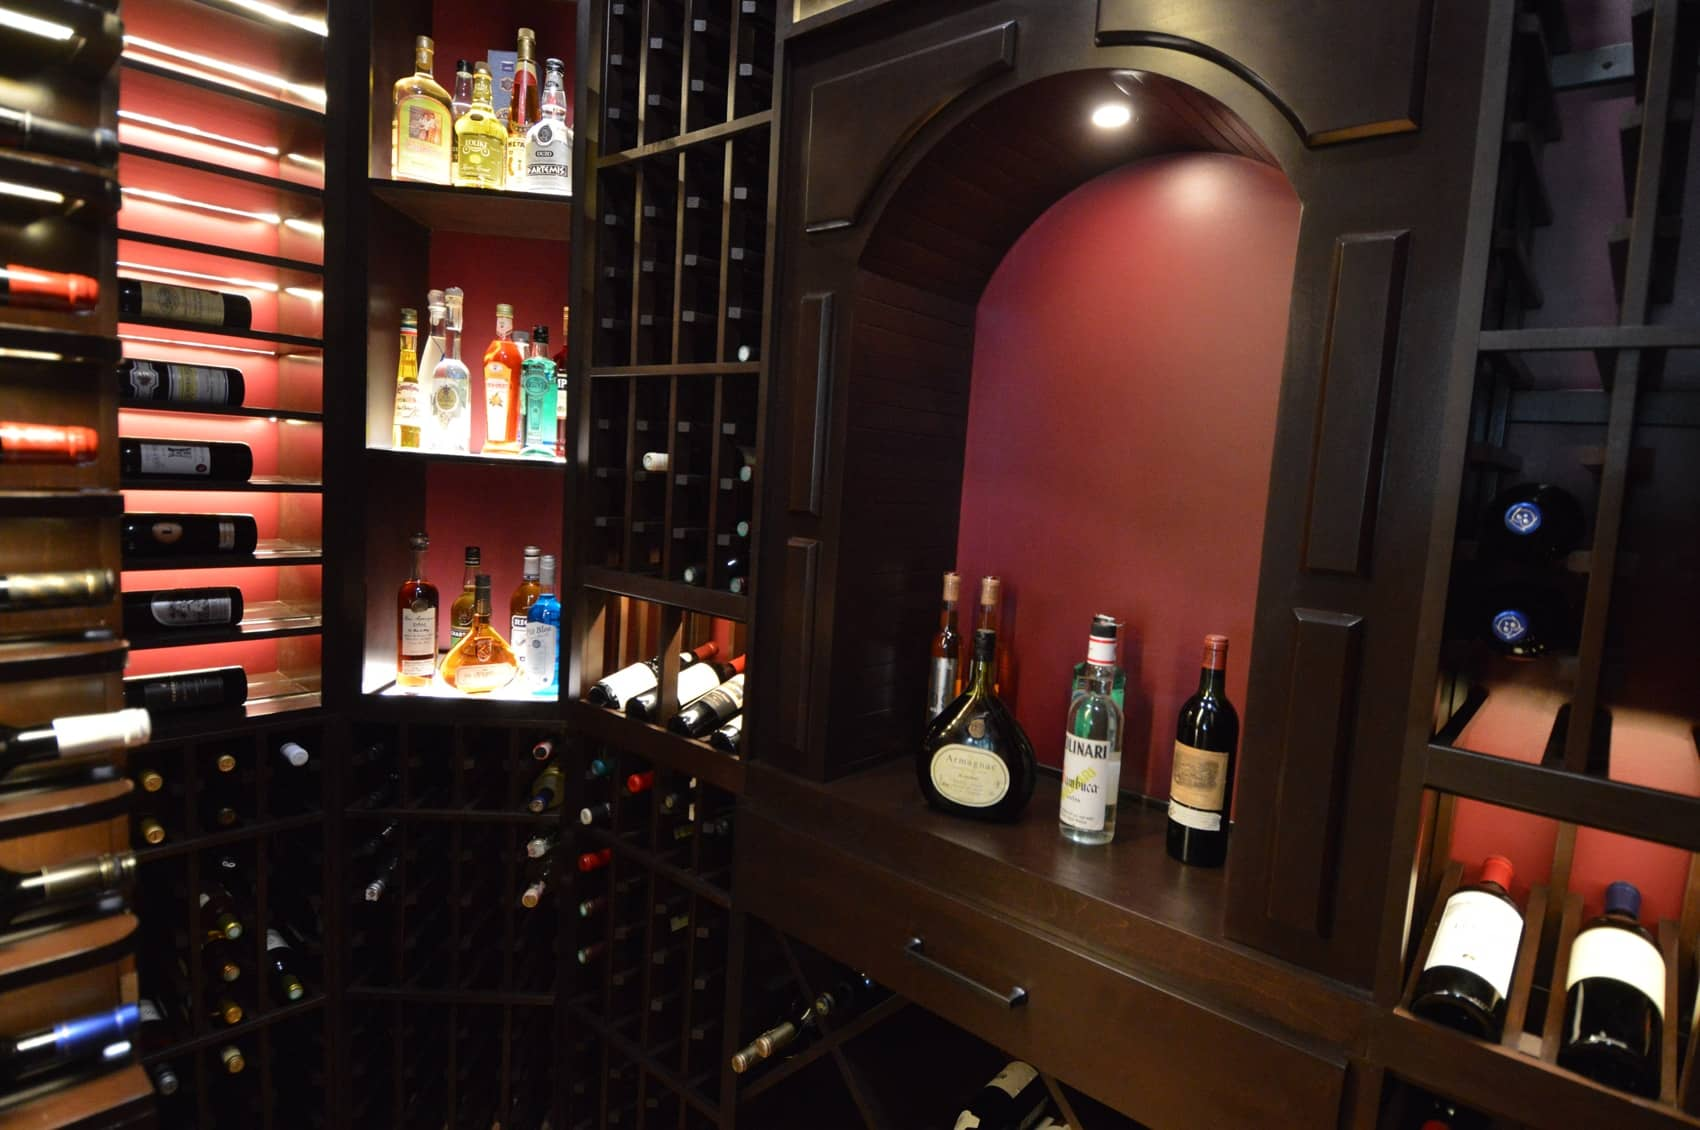 Steve's team created a custom wine cellar arch to house more spirts. Alternately, the area could also be use for decantation of wines.